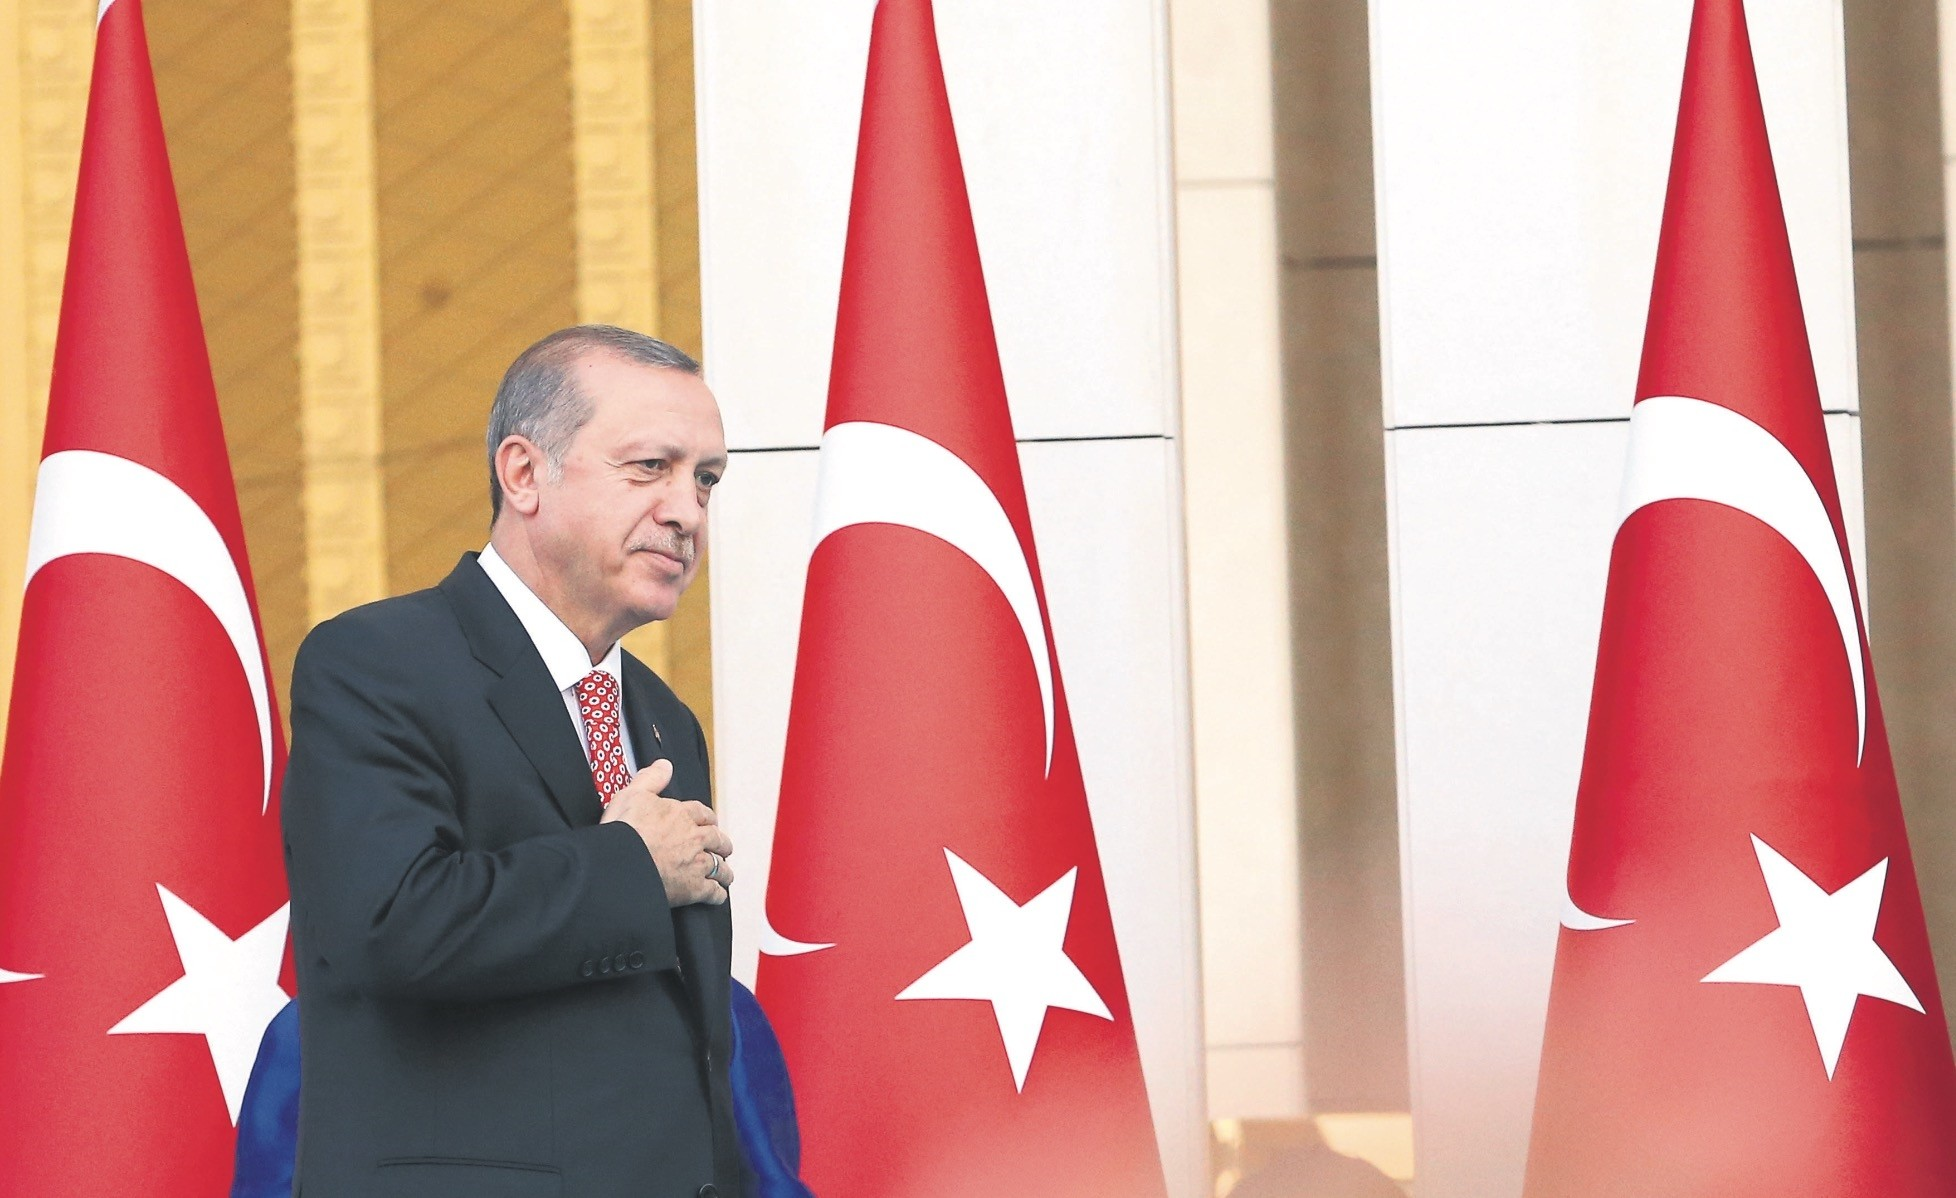 More than 20 heads of states and high-level officials will attend the ceremony at the Beu015ftepe Presidential Complex in Ankara.